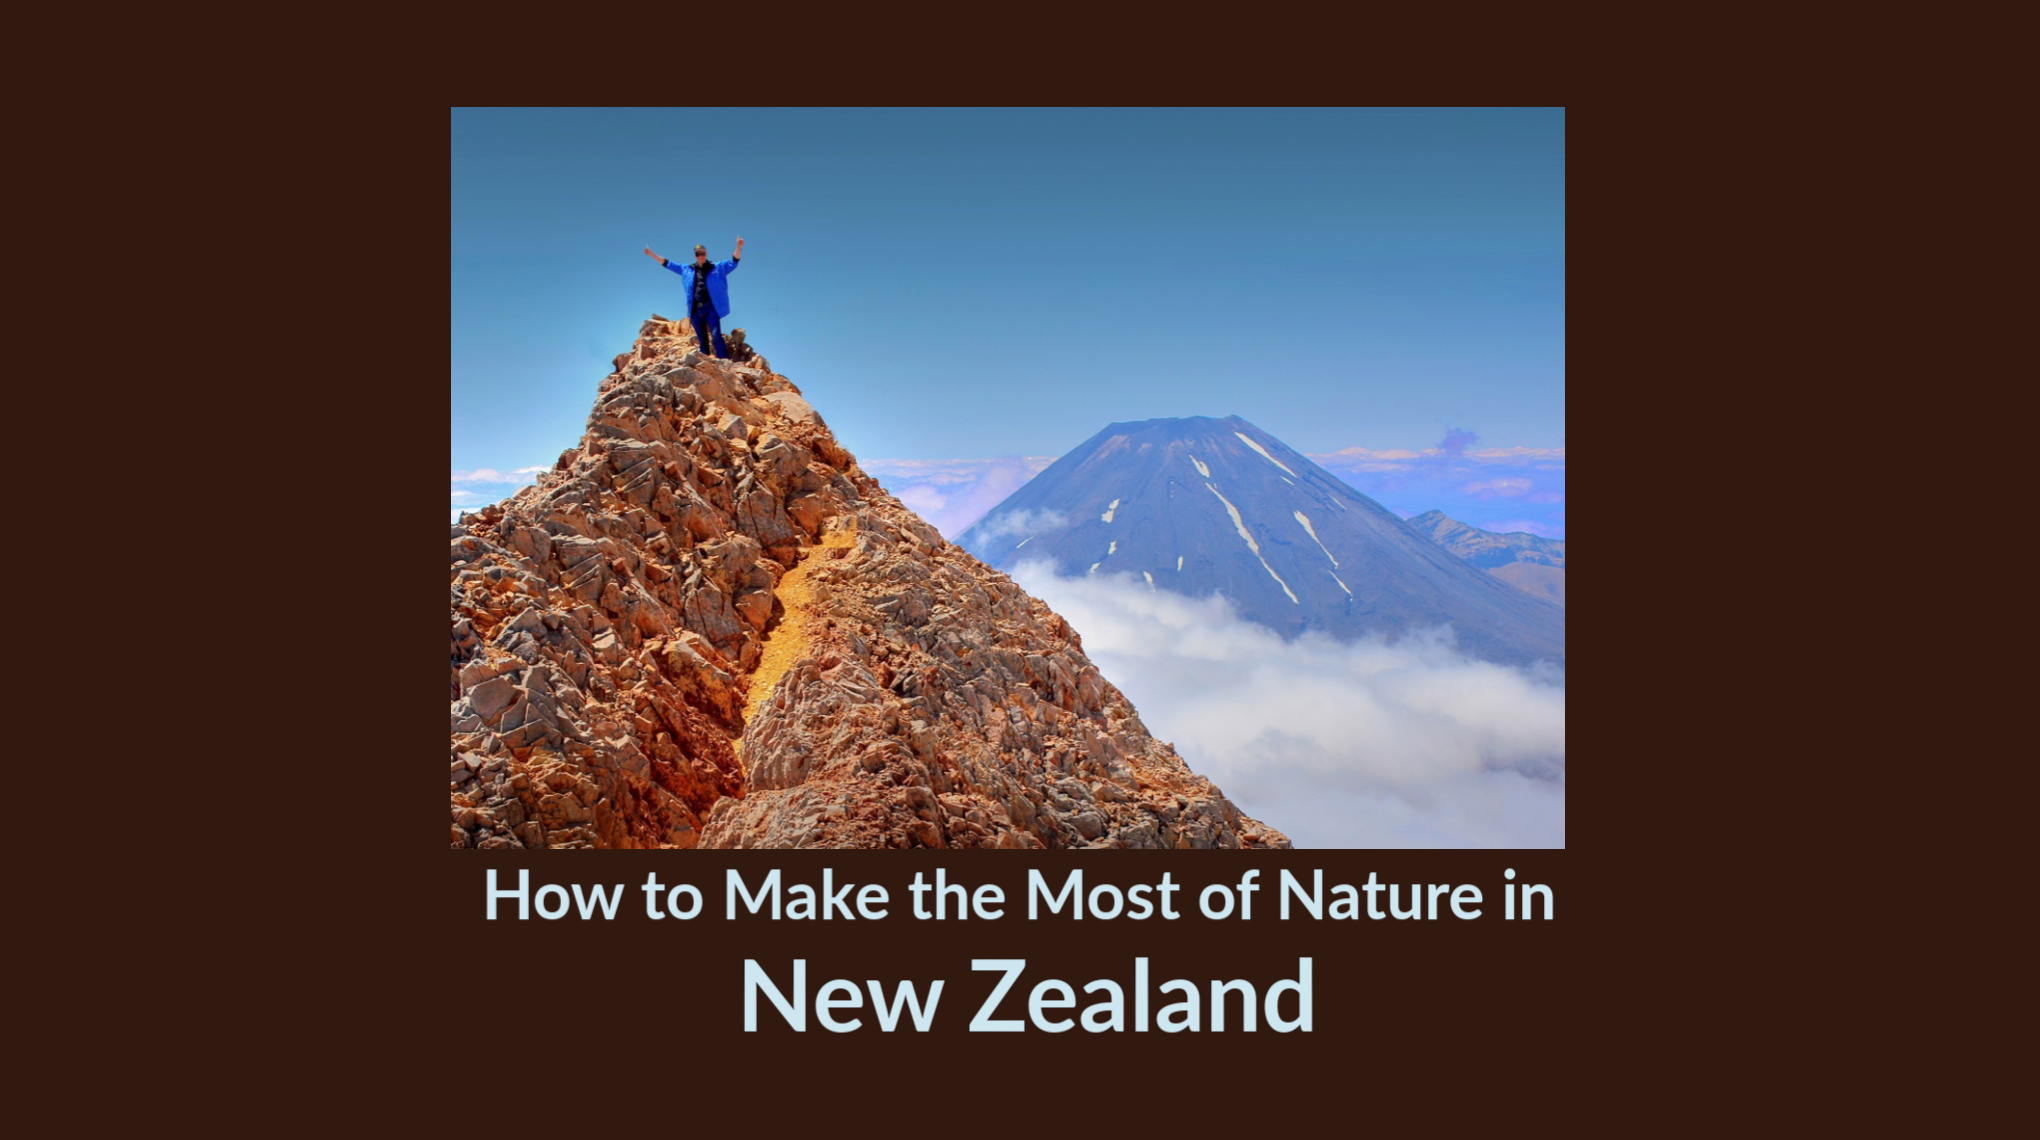 How to Make the Most of Nature in New Zealand